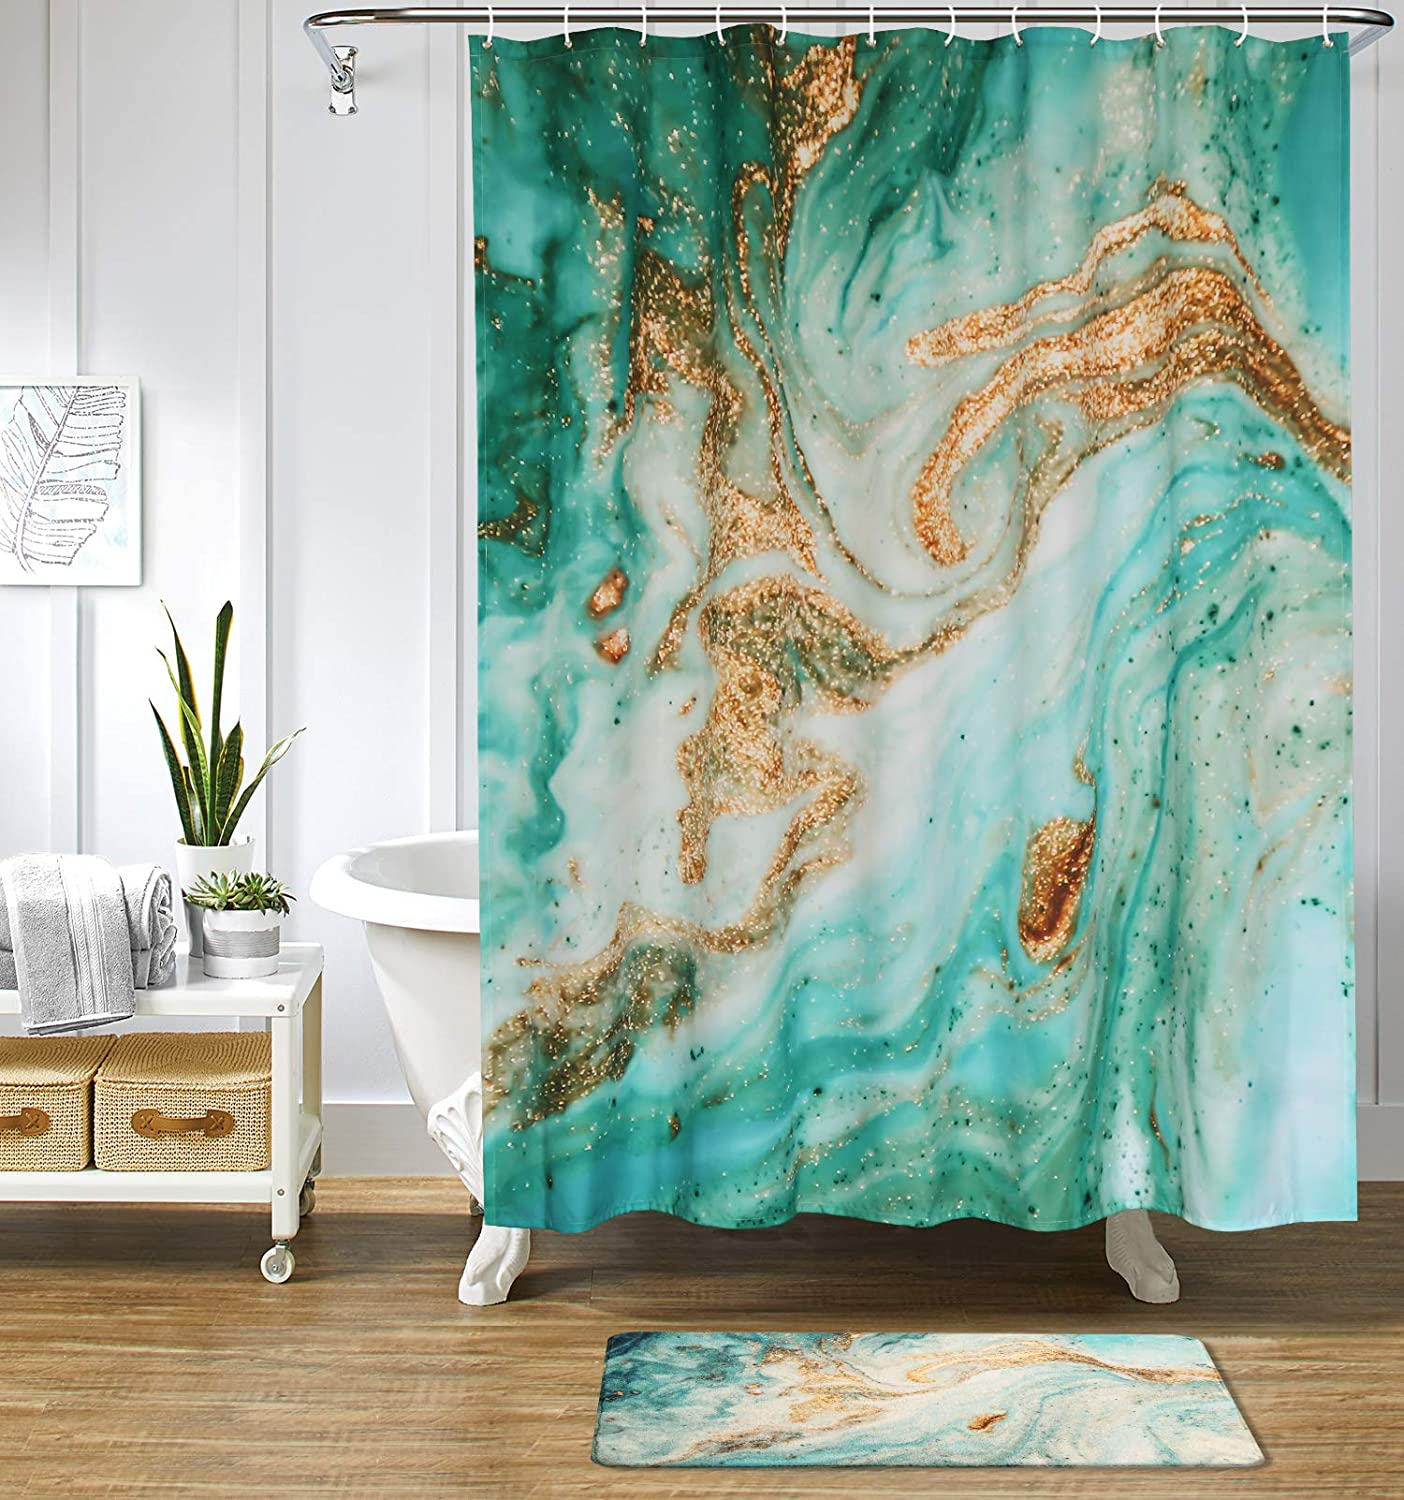 Uphome Marble Texture Shower Curtain Abstract Green Marble Swirls Ripples Fabric Shower Curtain with Art Gold Cracked for Bathtub Showers Bathroom Decor,Heavy Duty and Waterproof(72